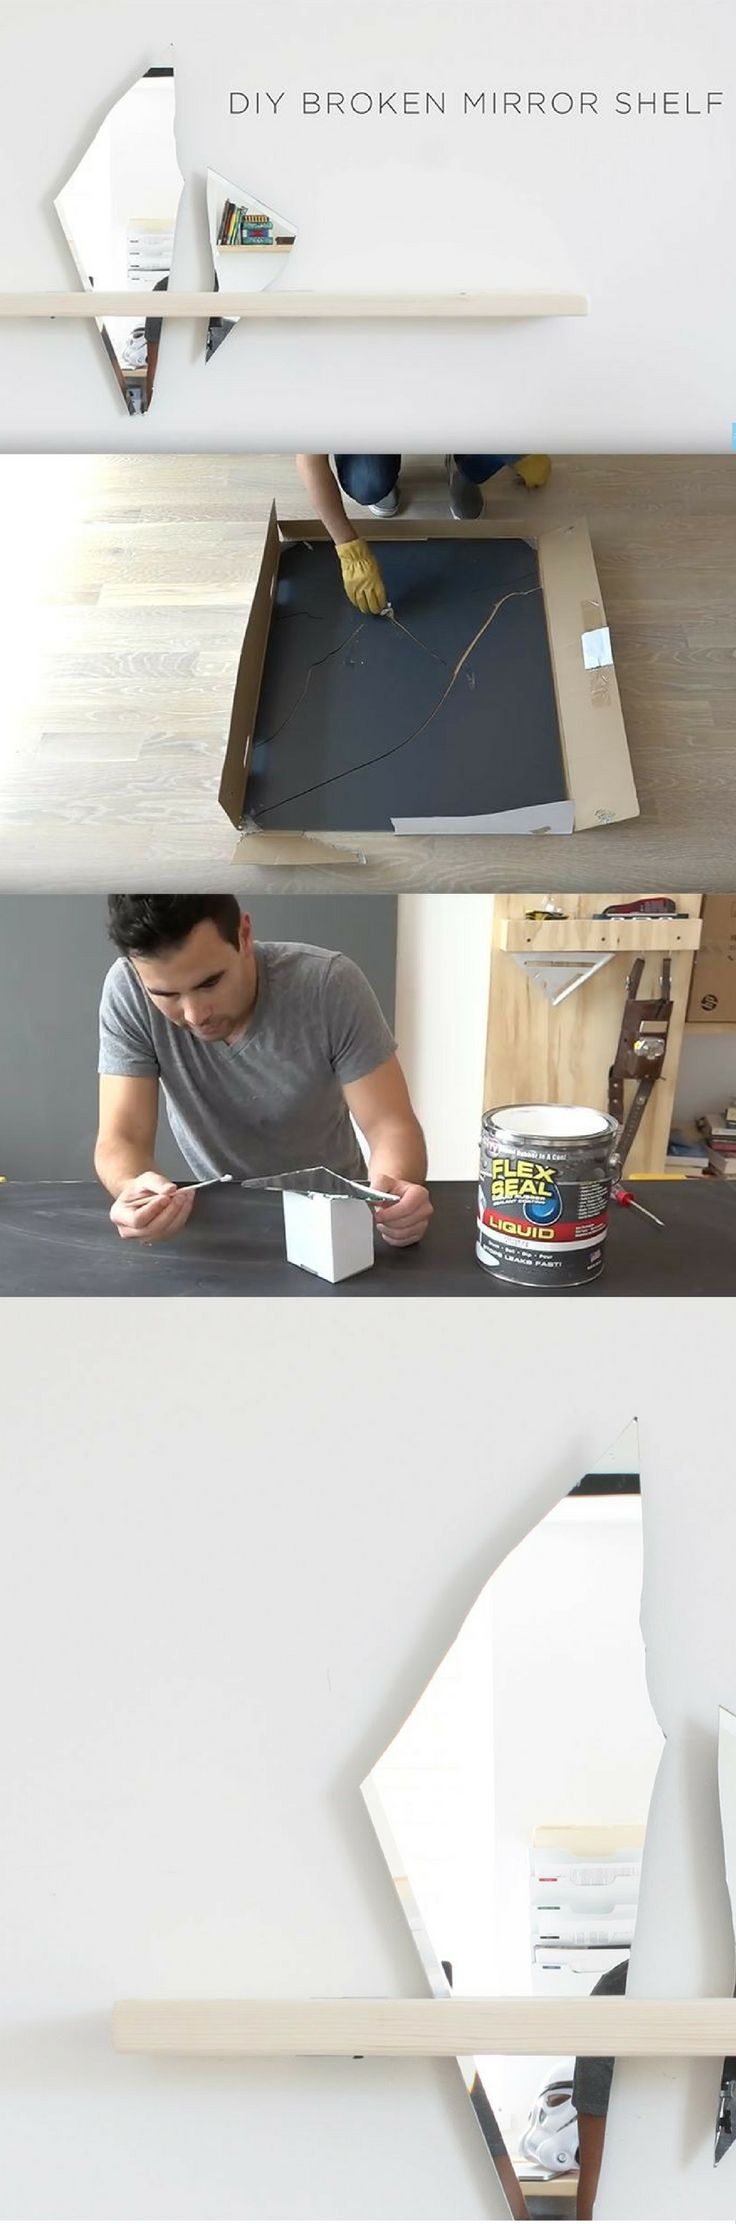 DIY Broken Mirror Shelf, Very Cool Idea. Watch This Guys Other Videos As Well, Some Awesome Ideas http://vid.staged.com/tGct